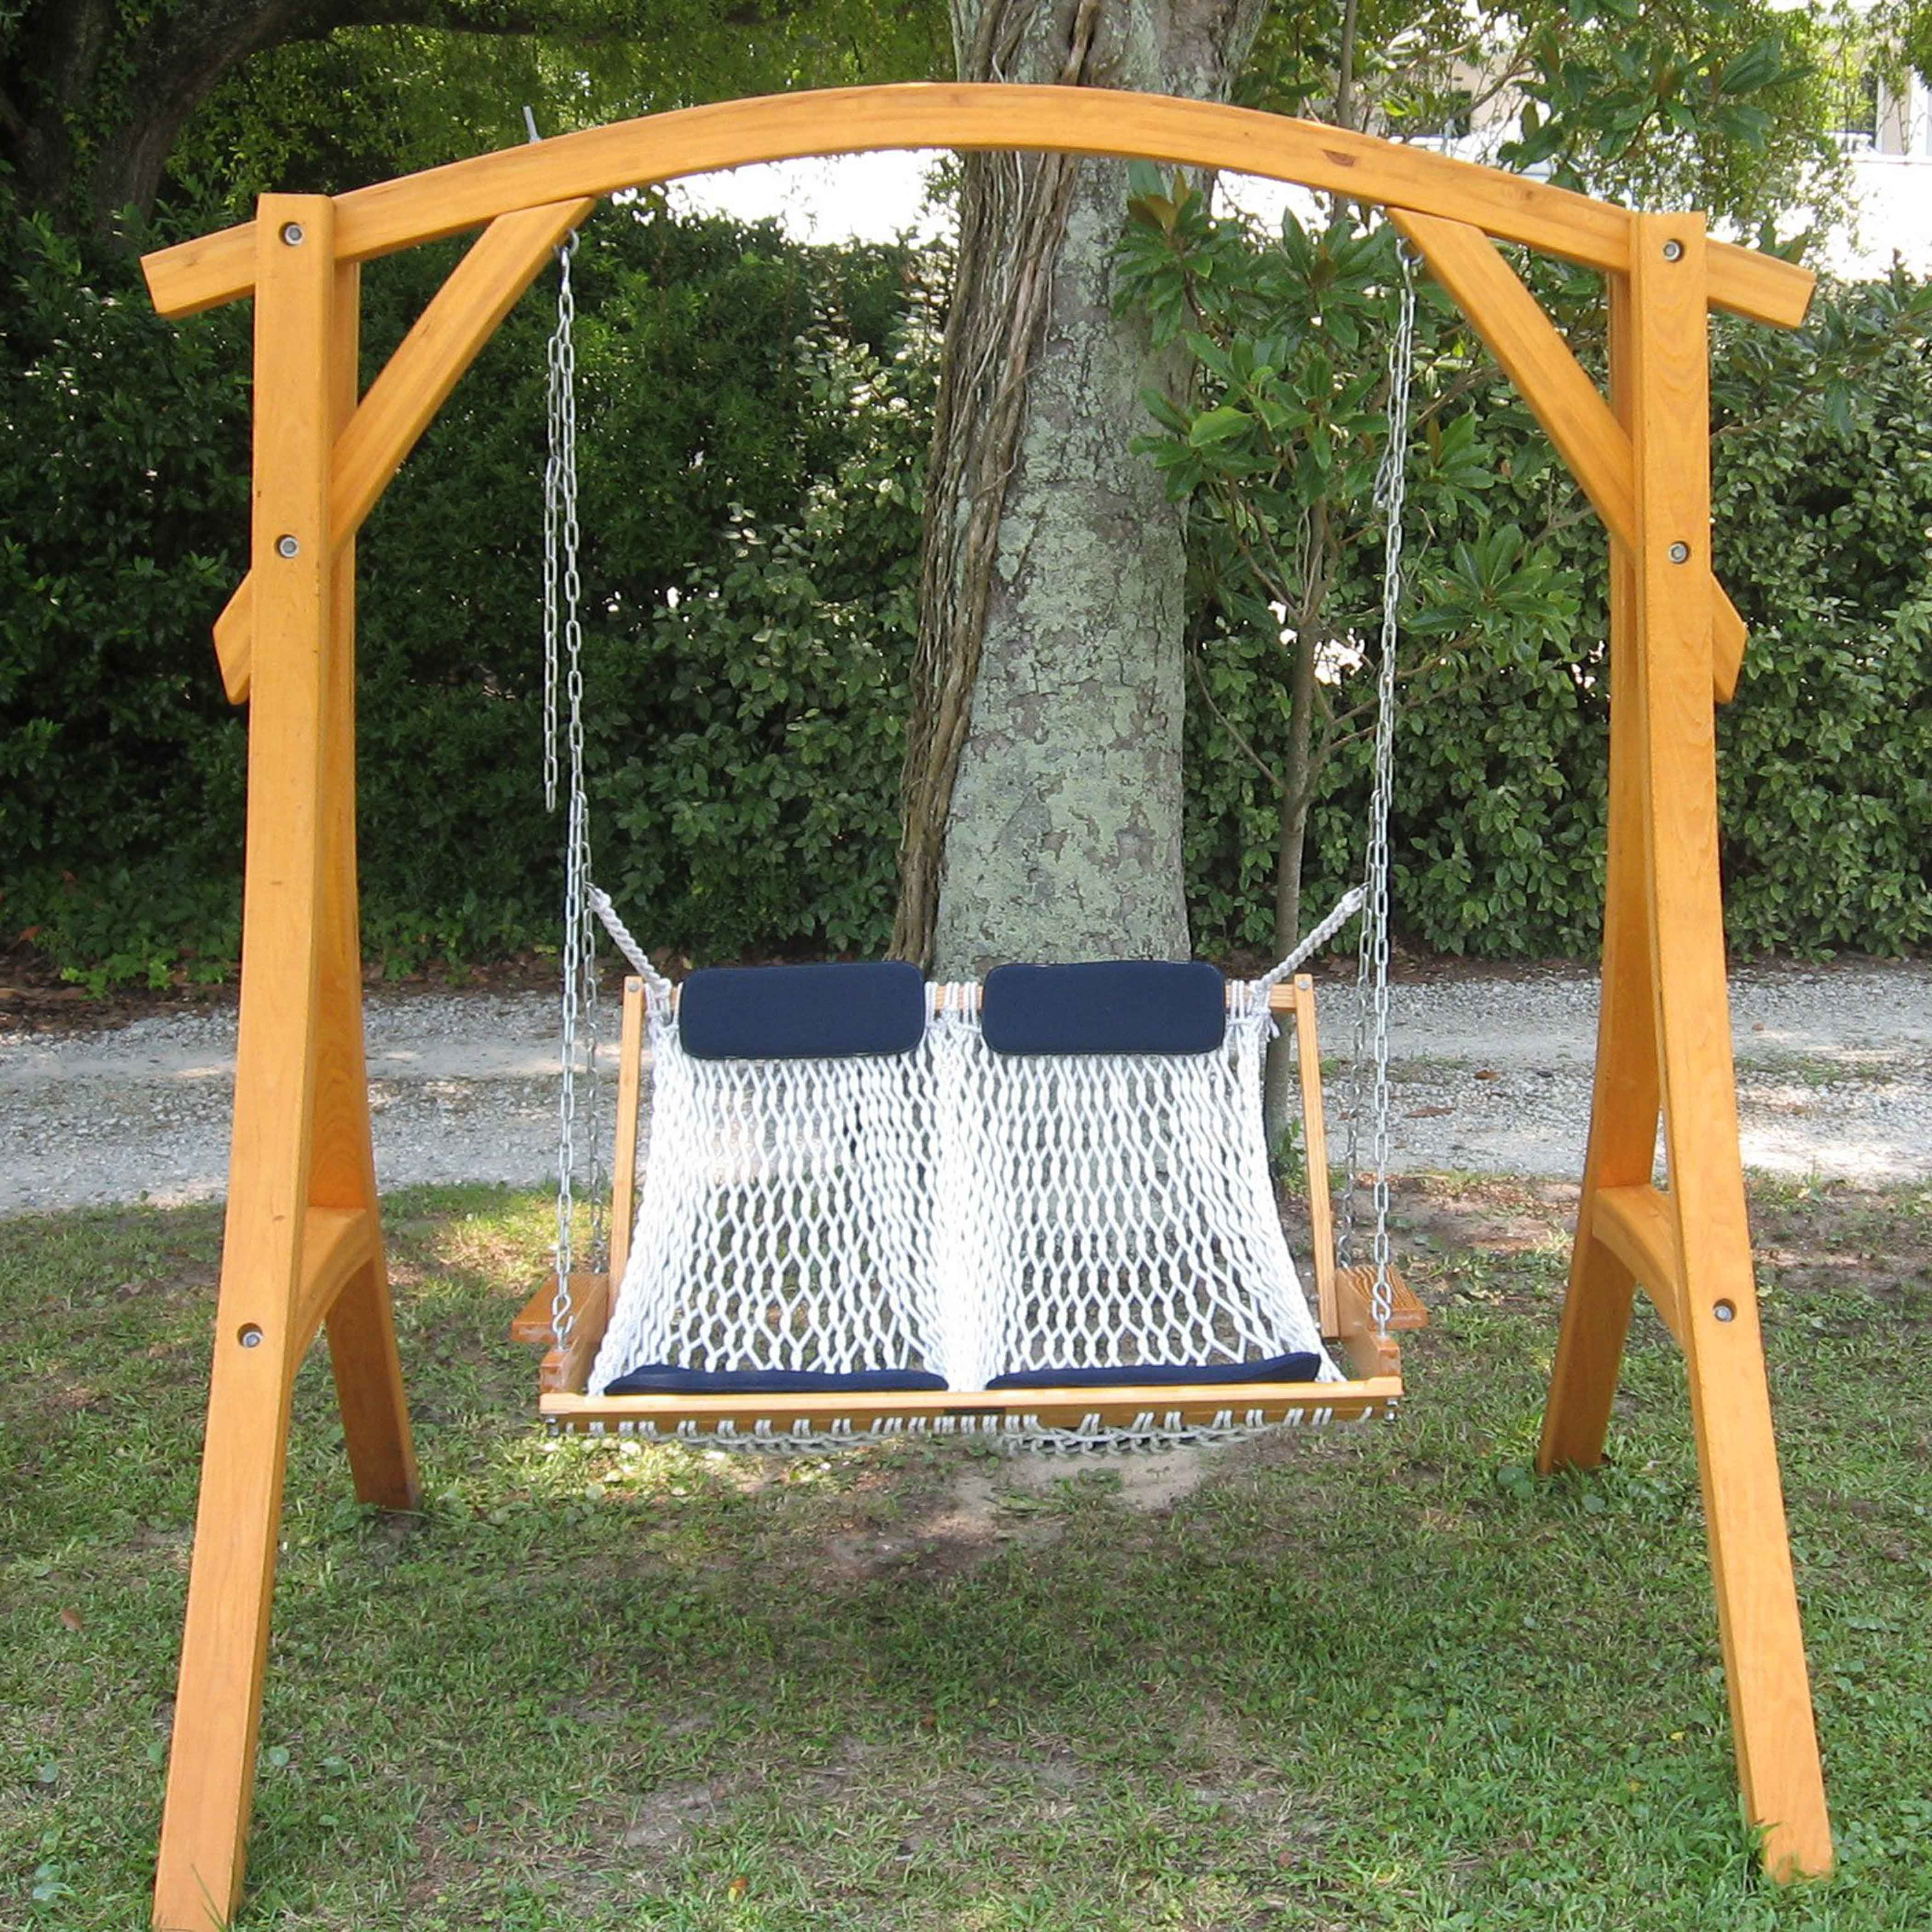 Swings of wood and penahand ari strong wood has a swing beds for